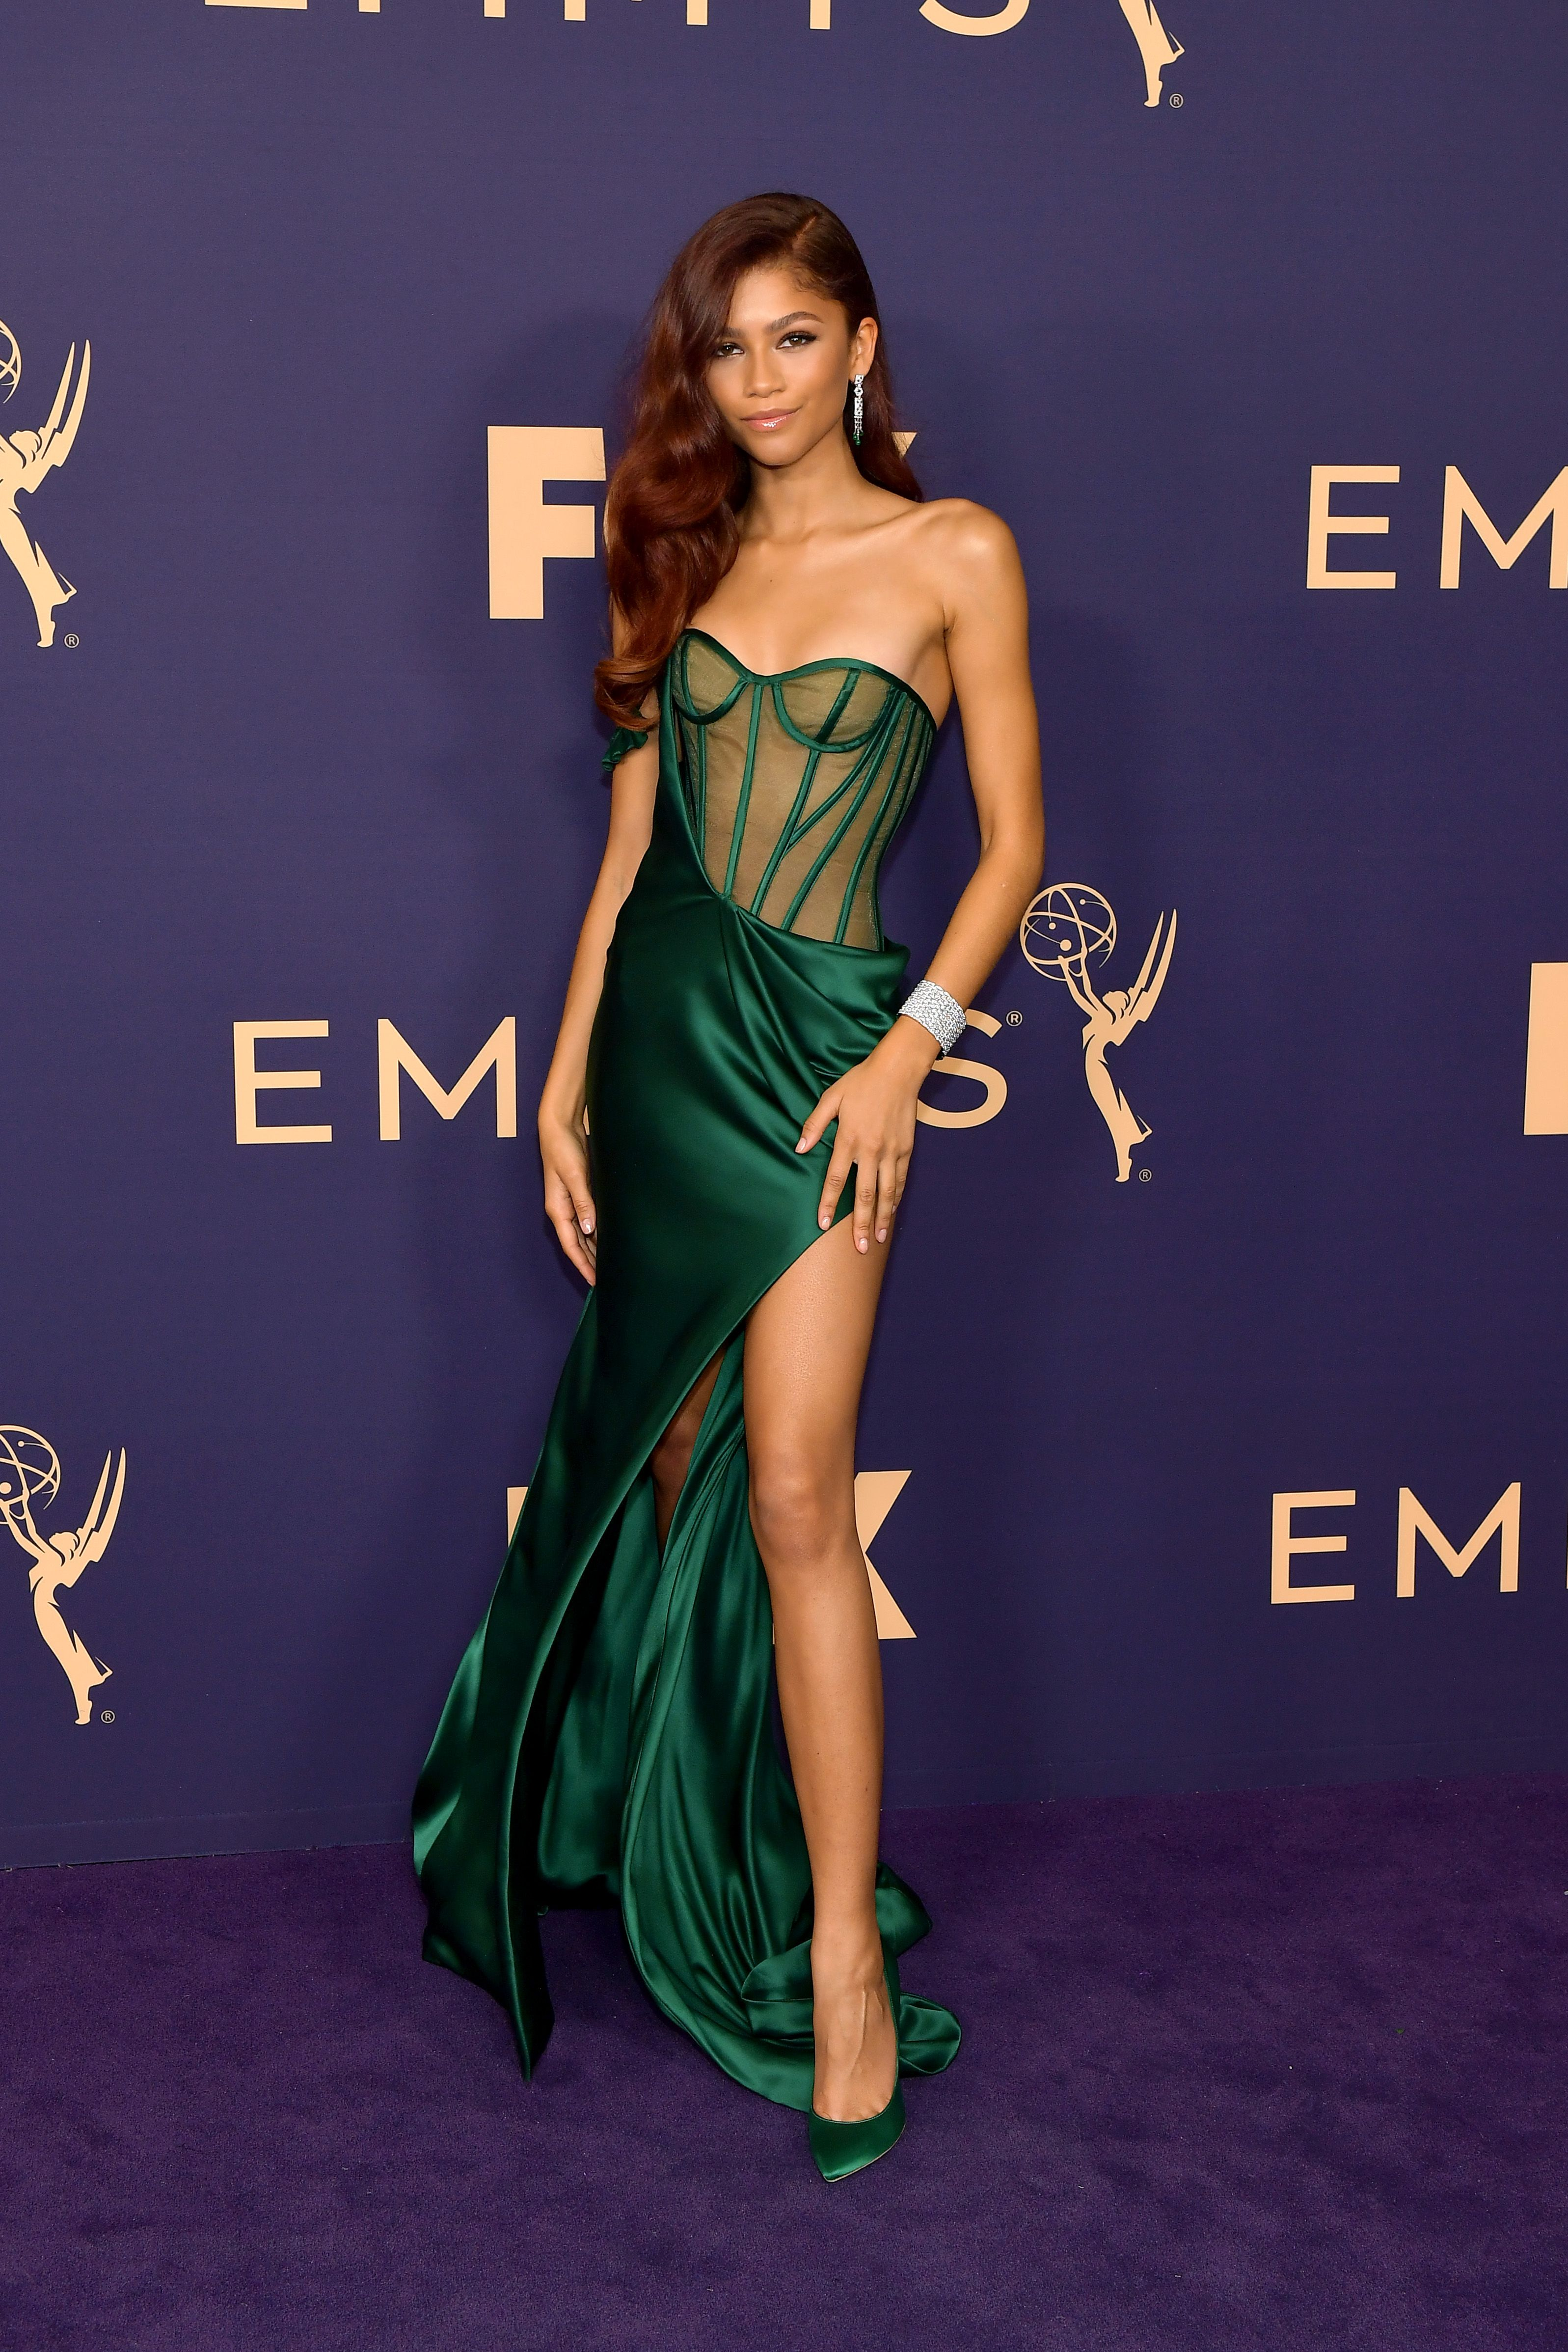 Zendaya glammed up at the Emmys